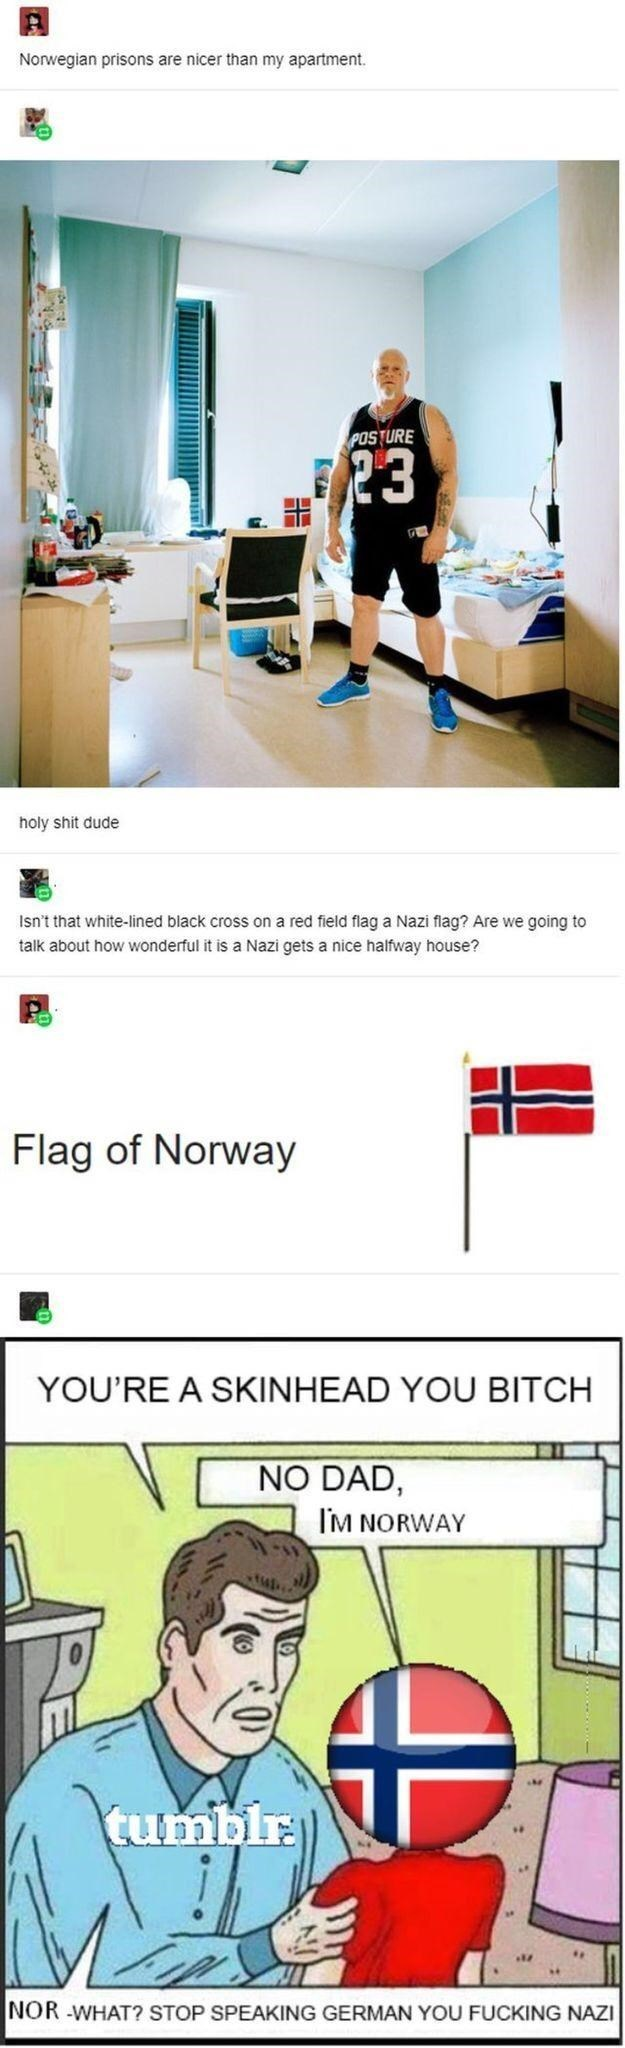 Text - Norwegian prisons are nicer than my apartment. POSTURE 23 holy shit dude Isn't that white-lined black cross on a red field flag a Nazi flag? Are we going to talk about how wonderful it is a Nazi gets a nice halfway house? Flag of Norway YOU'RE A SKINHEAD YOU BITCH NO DAD, I'M NORWAY tumblr. NOR -WHAT? STOP SPEAKING GERMAN YOU FUCKING NAZI